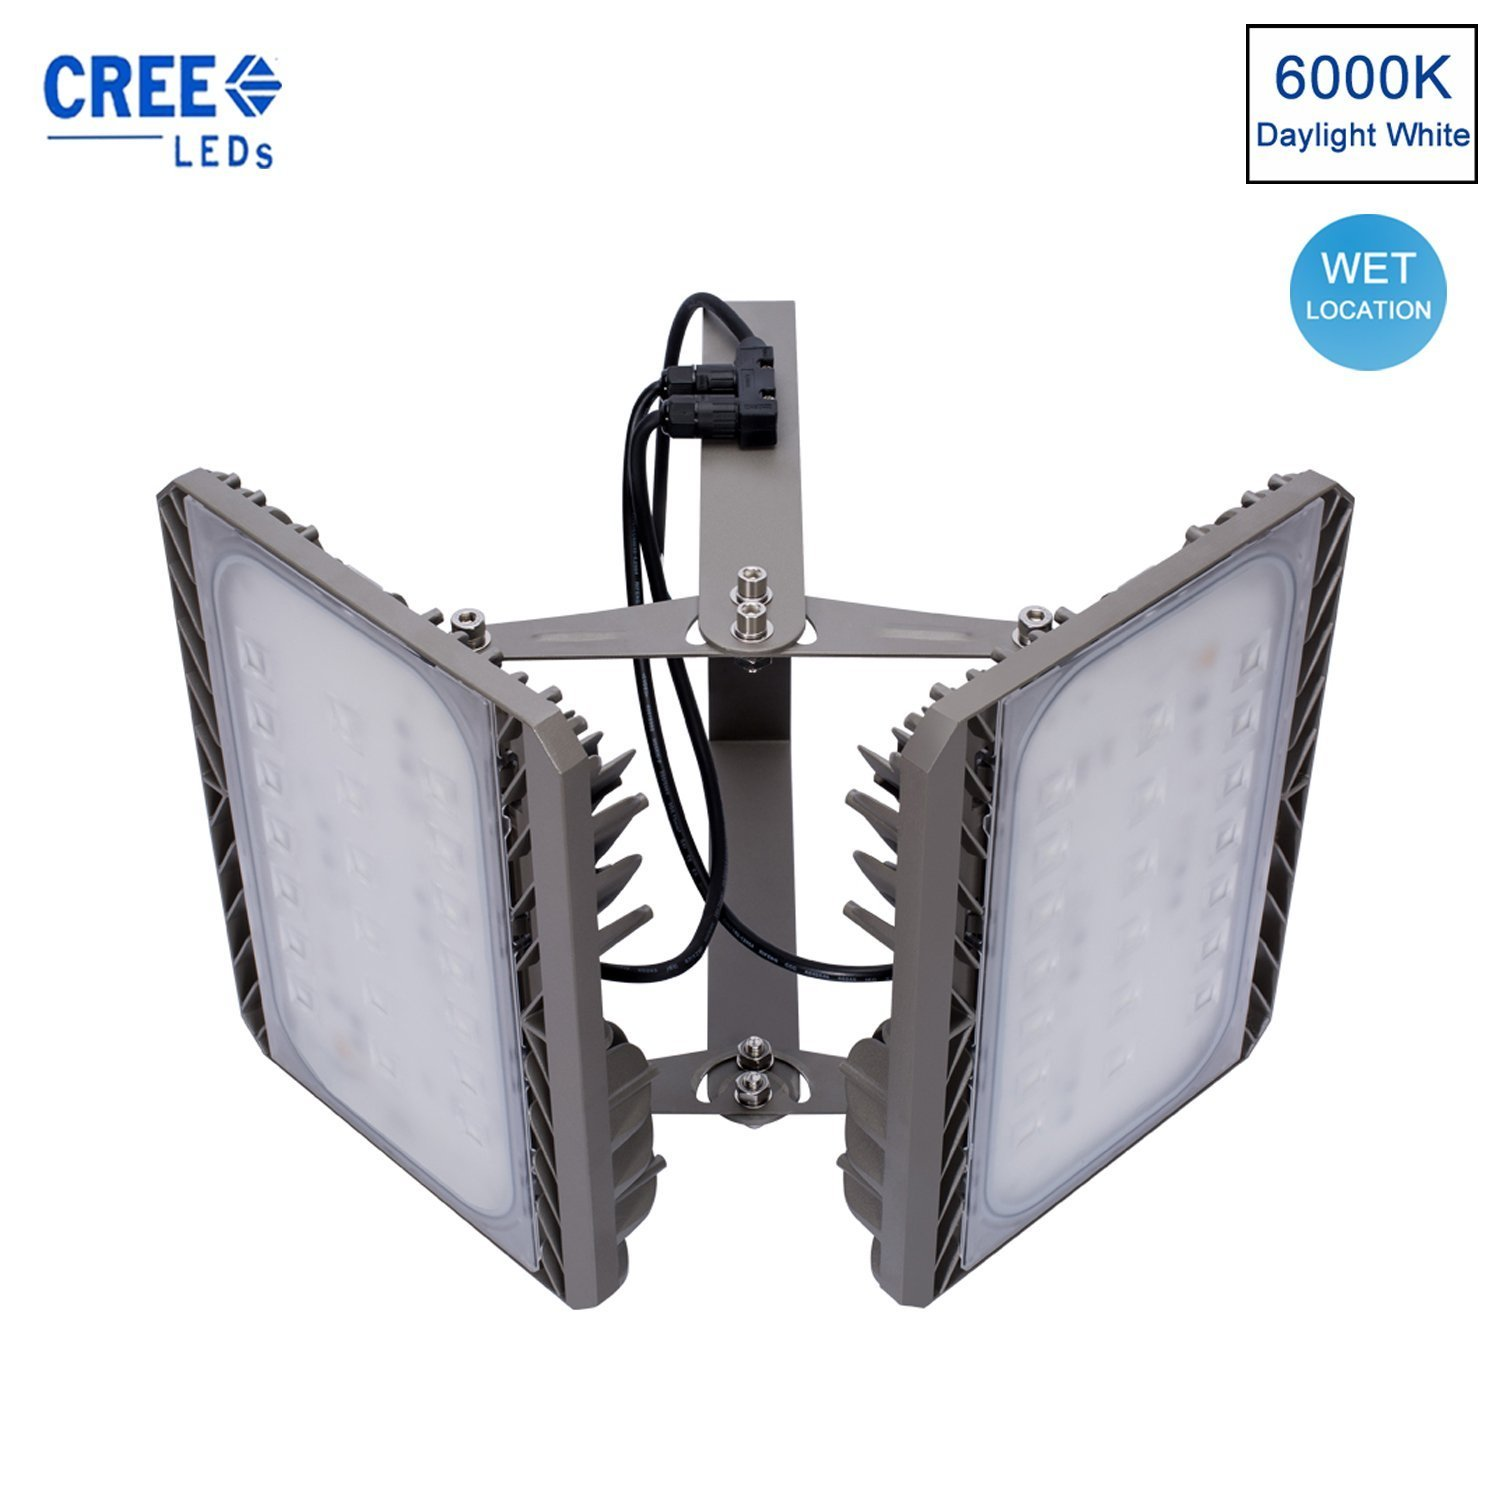 SOLLA 2-Head Led Flood Light Outdoor 200W CREE Security Lights 18000LM,6000K Daylight,Waterproof IP65 for Outdoor Floodlight Landscape Spotlight